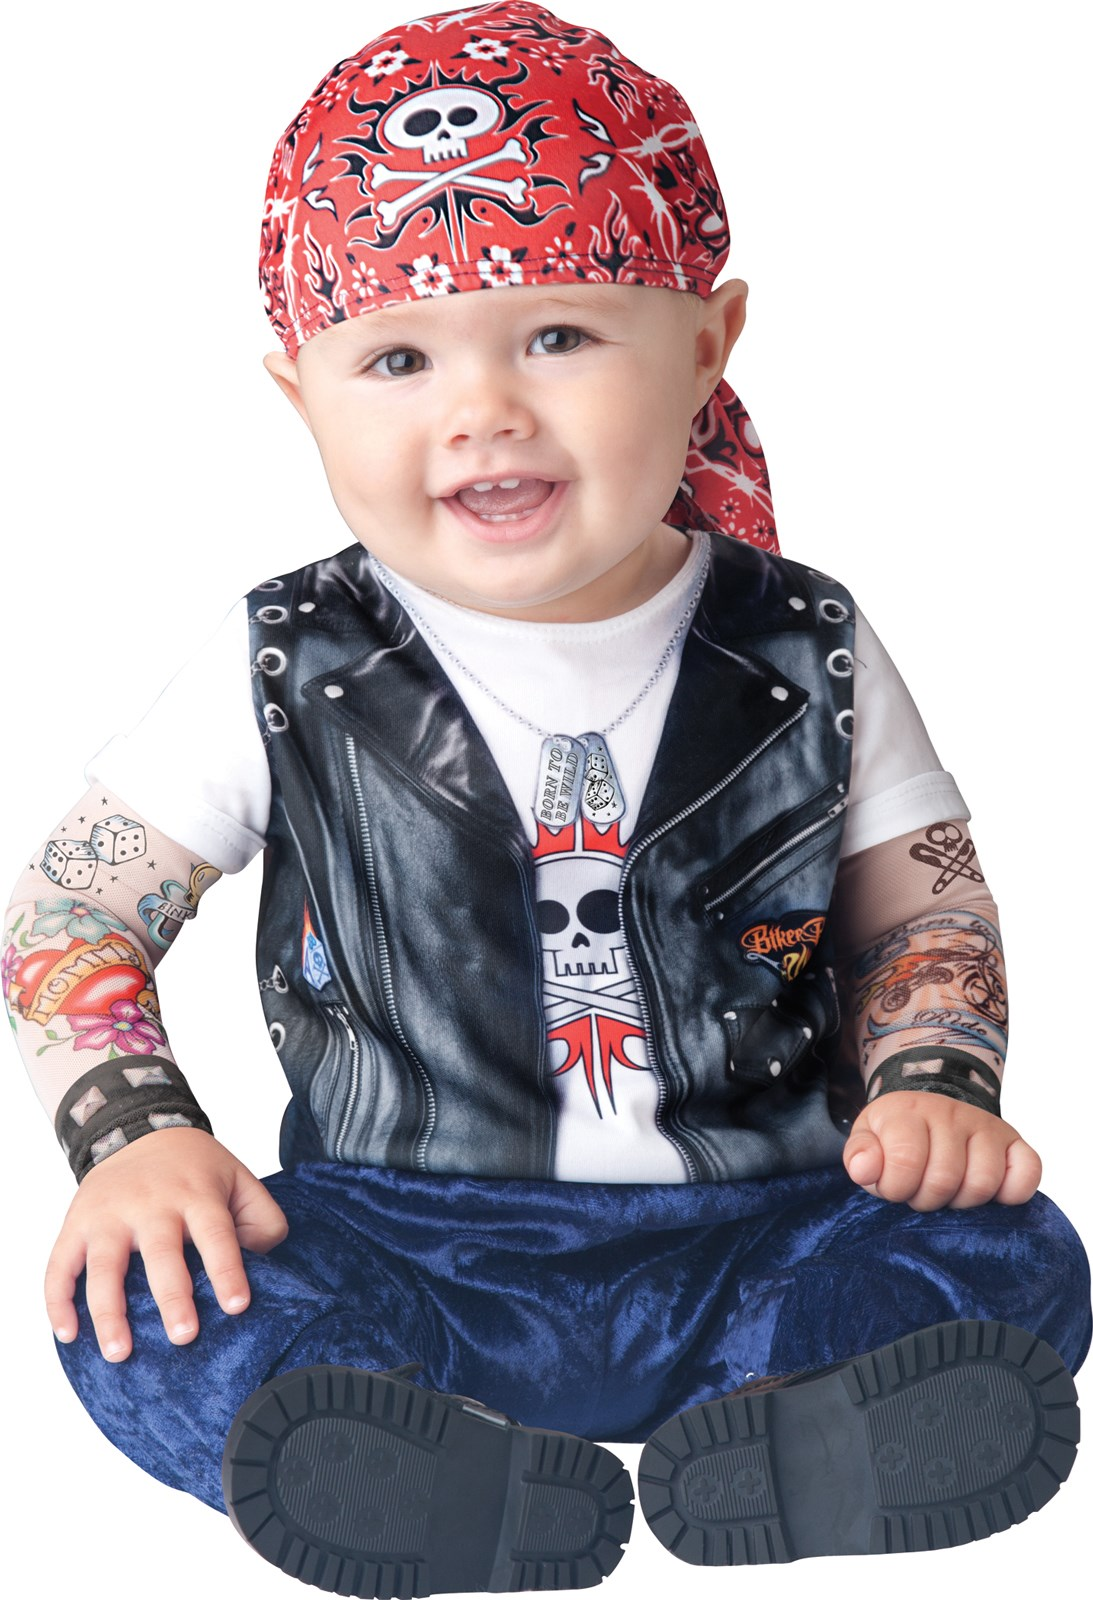 Born to be Wild Infant / Toddler Costume   BuyCostumes.com